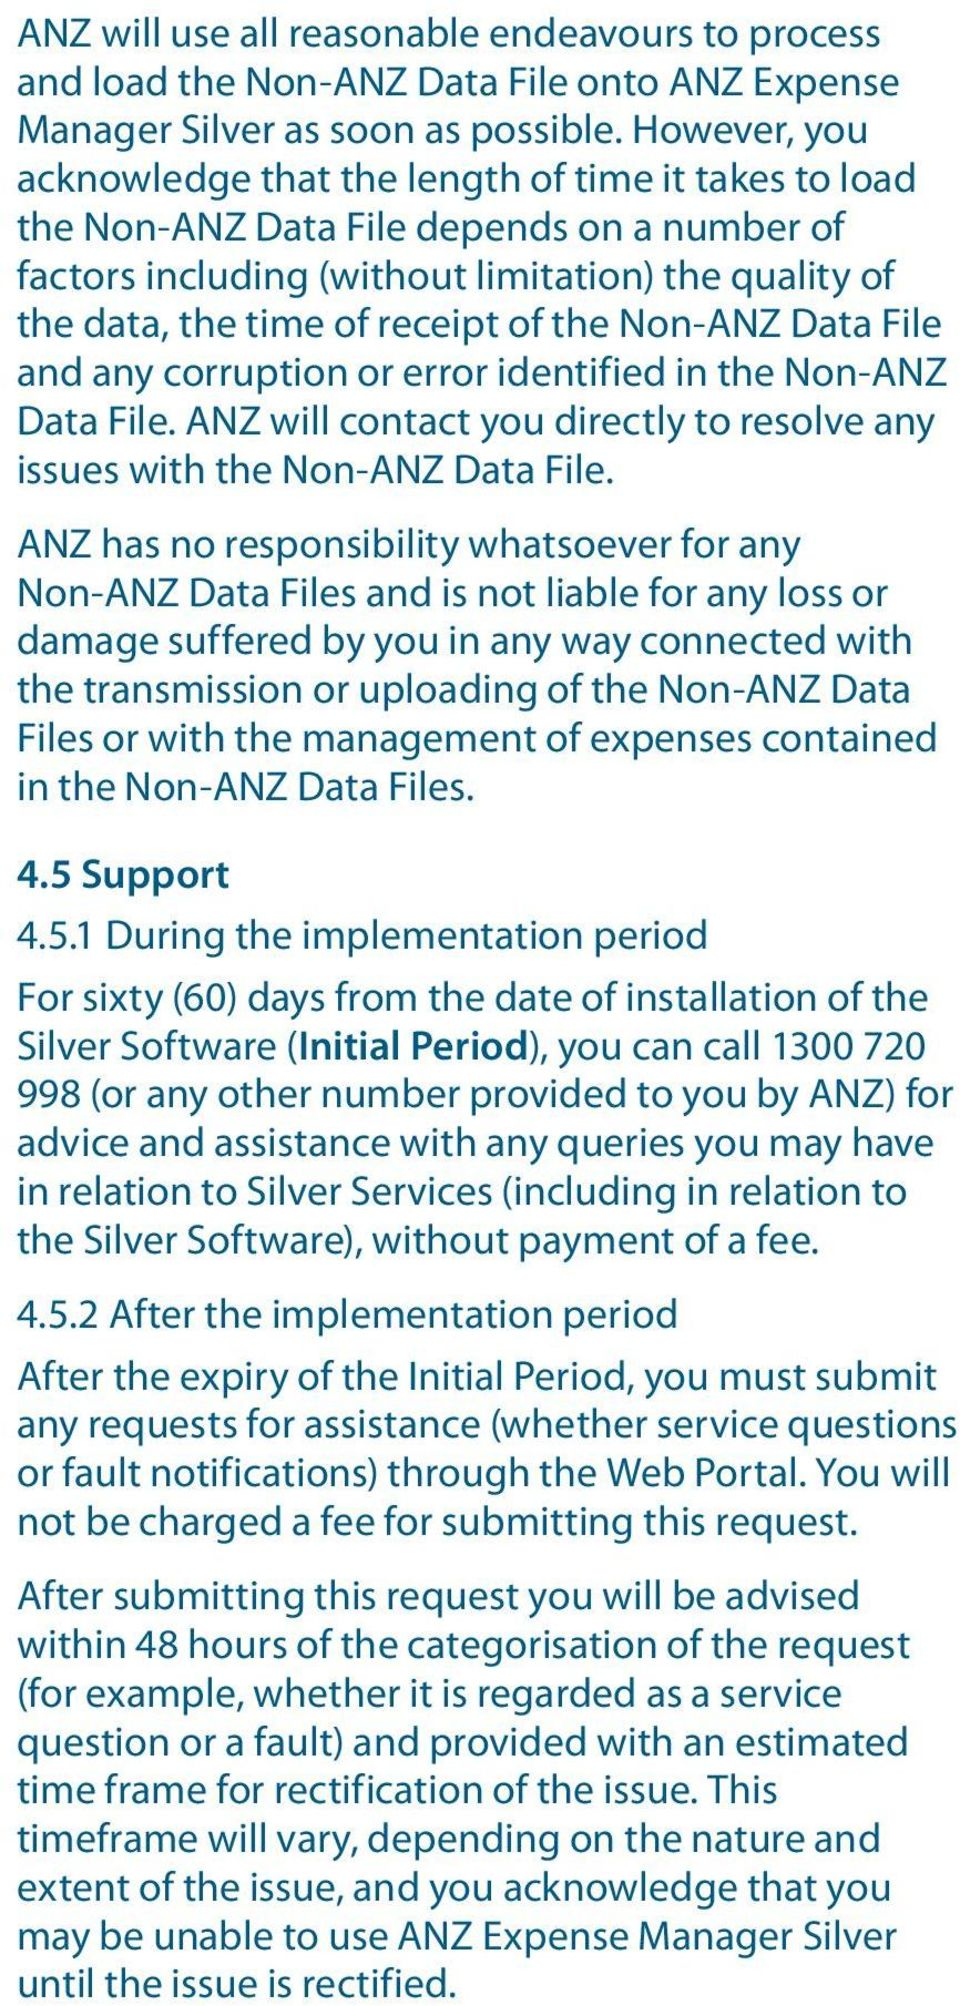 the Non-ANZ Data File and any corruption or error identified in the Non-ANZ Data File. ANZ will contact you directly to resolve any issues with the Non-ANZ Data File.